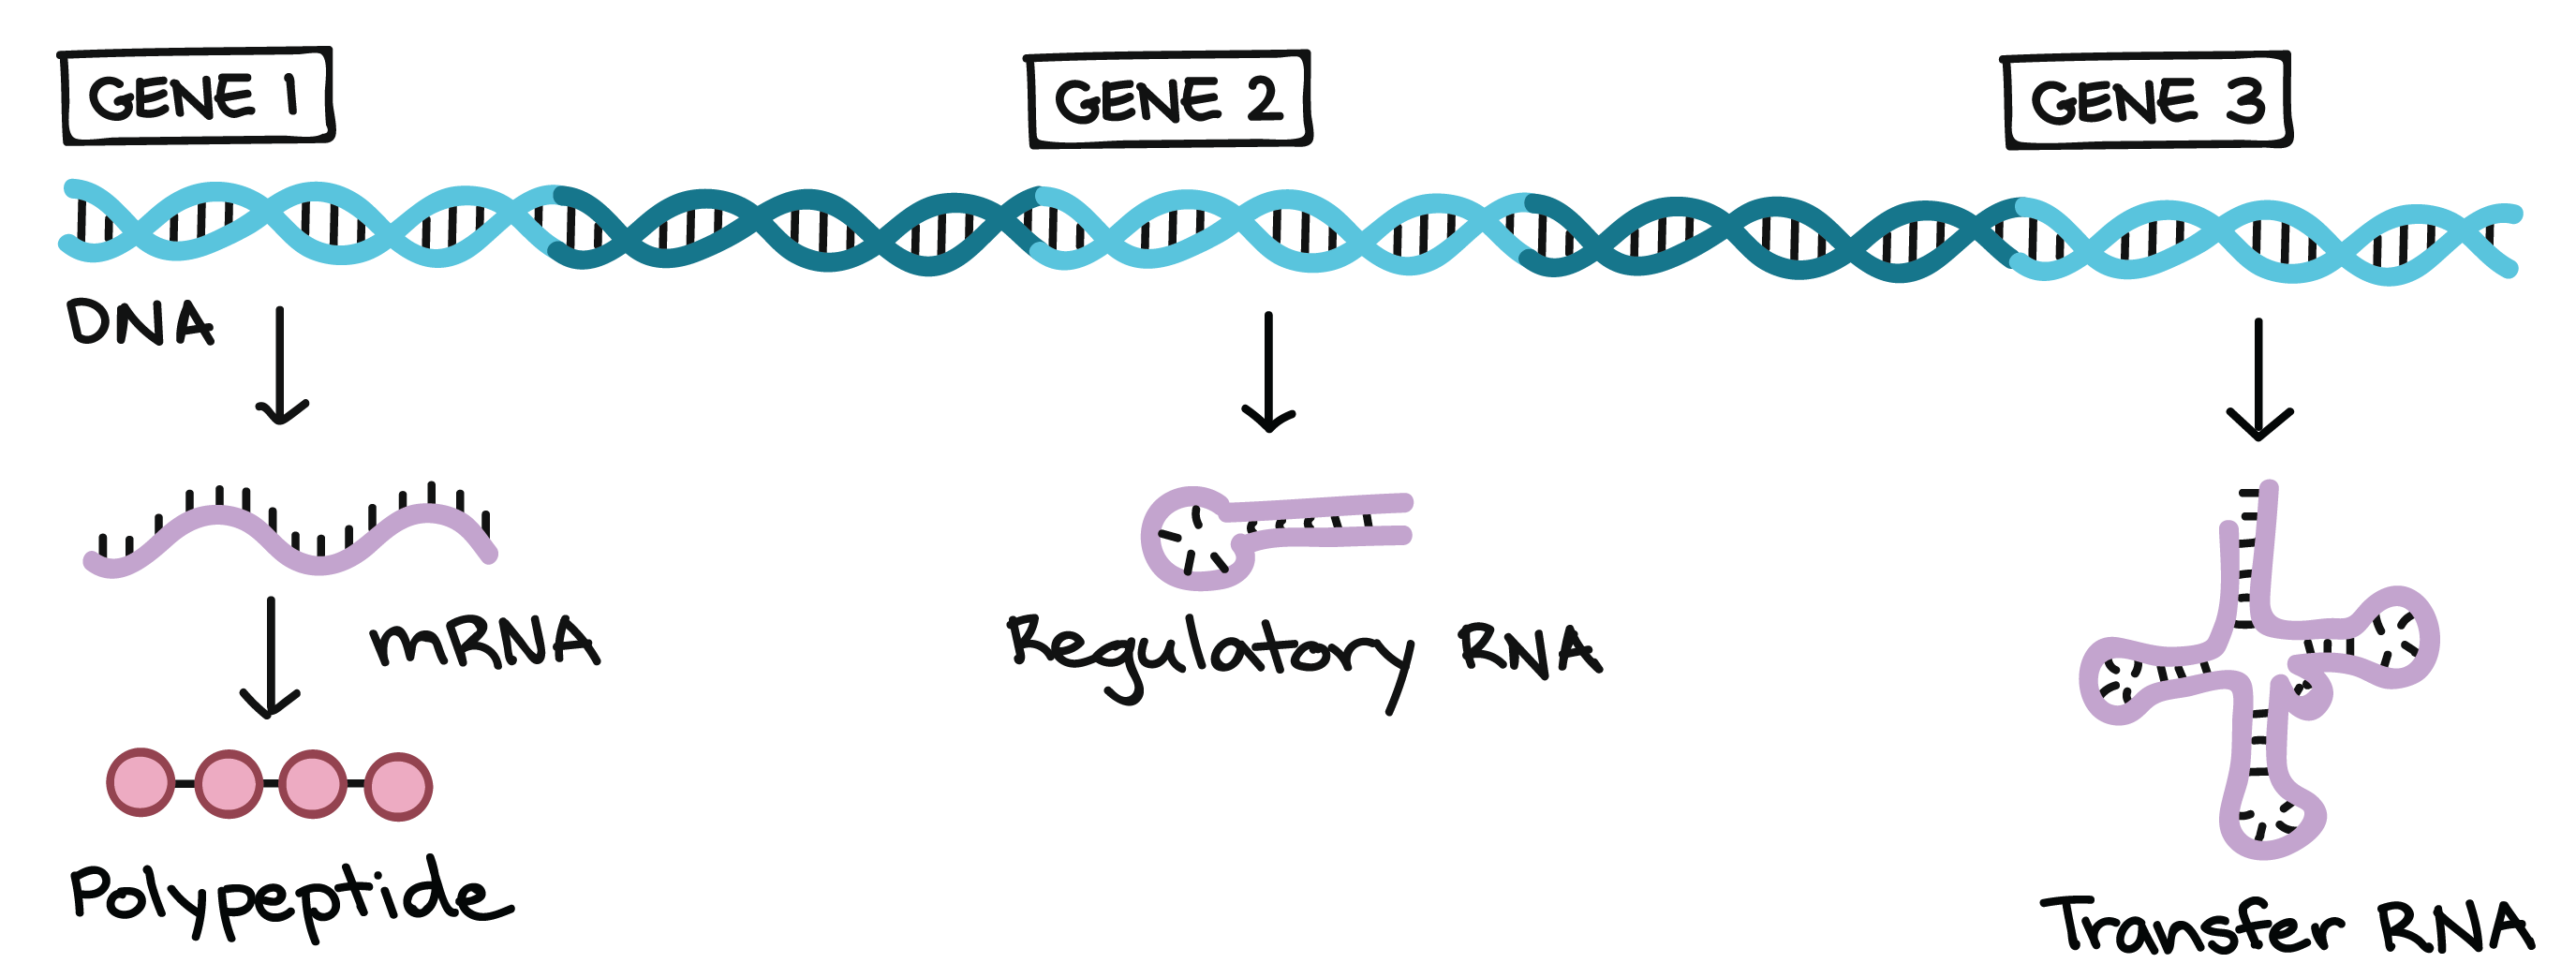 Properties Of Genetic Code Ppt Transcription And